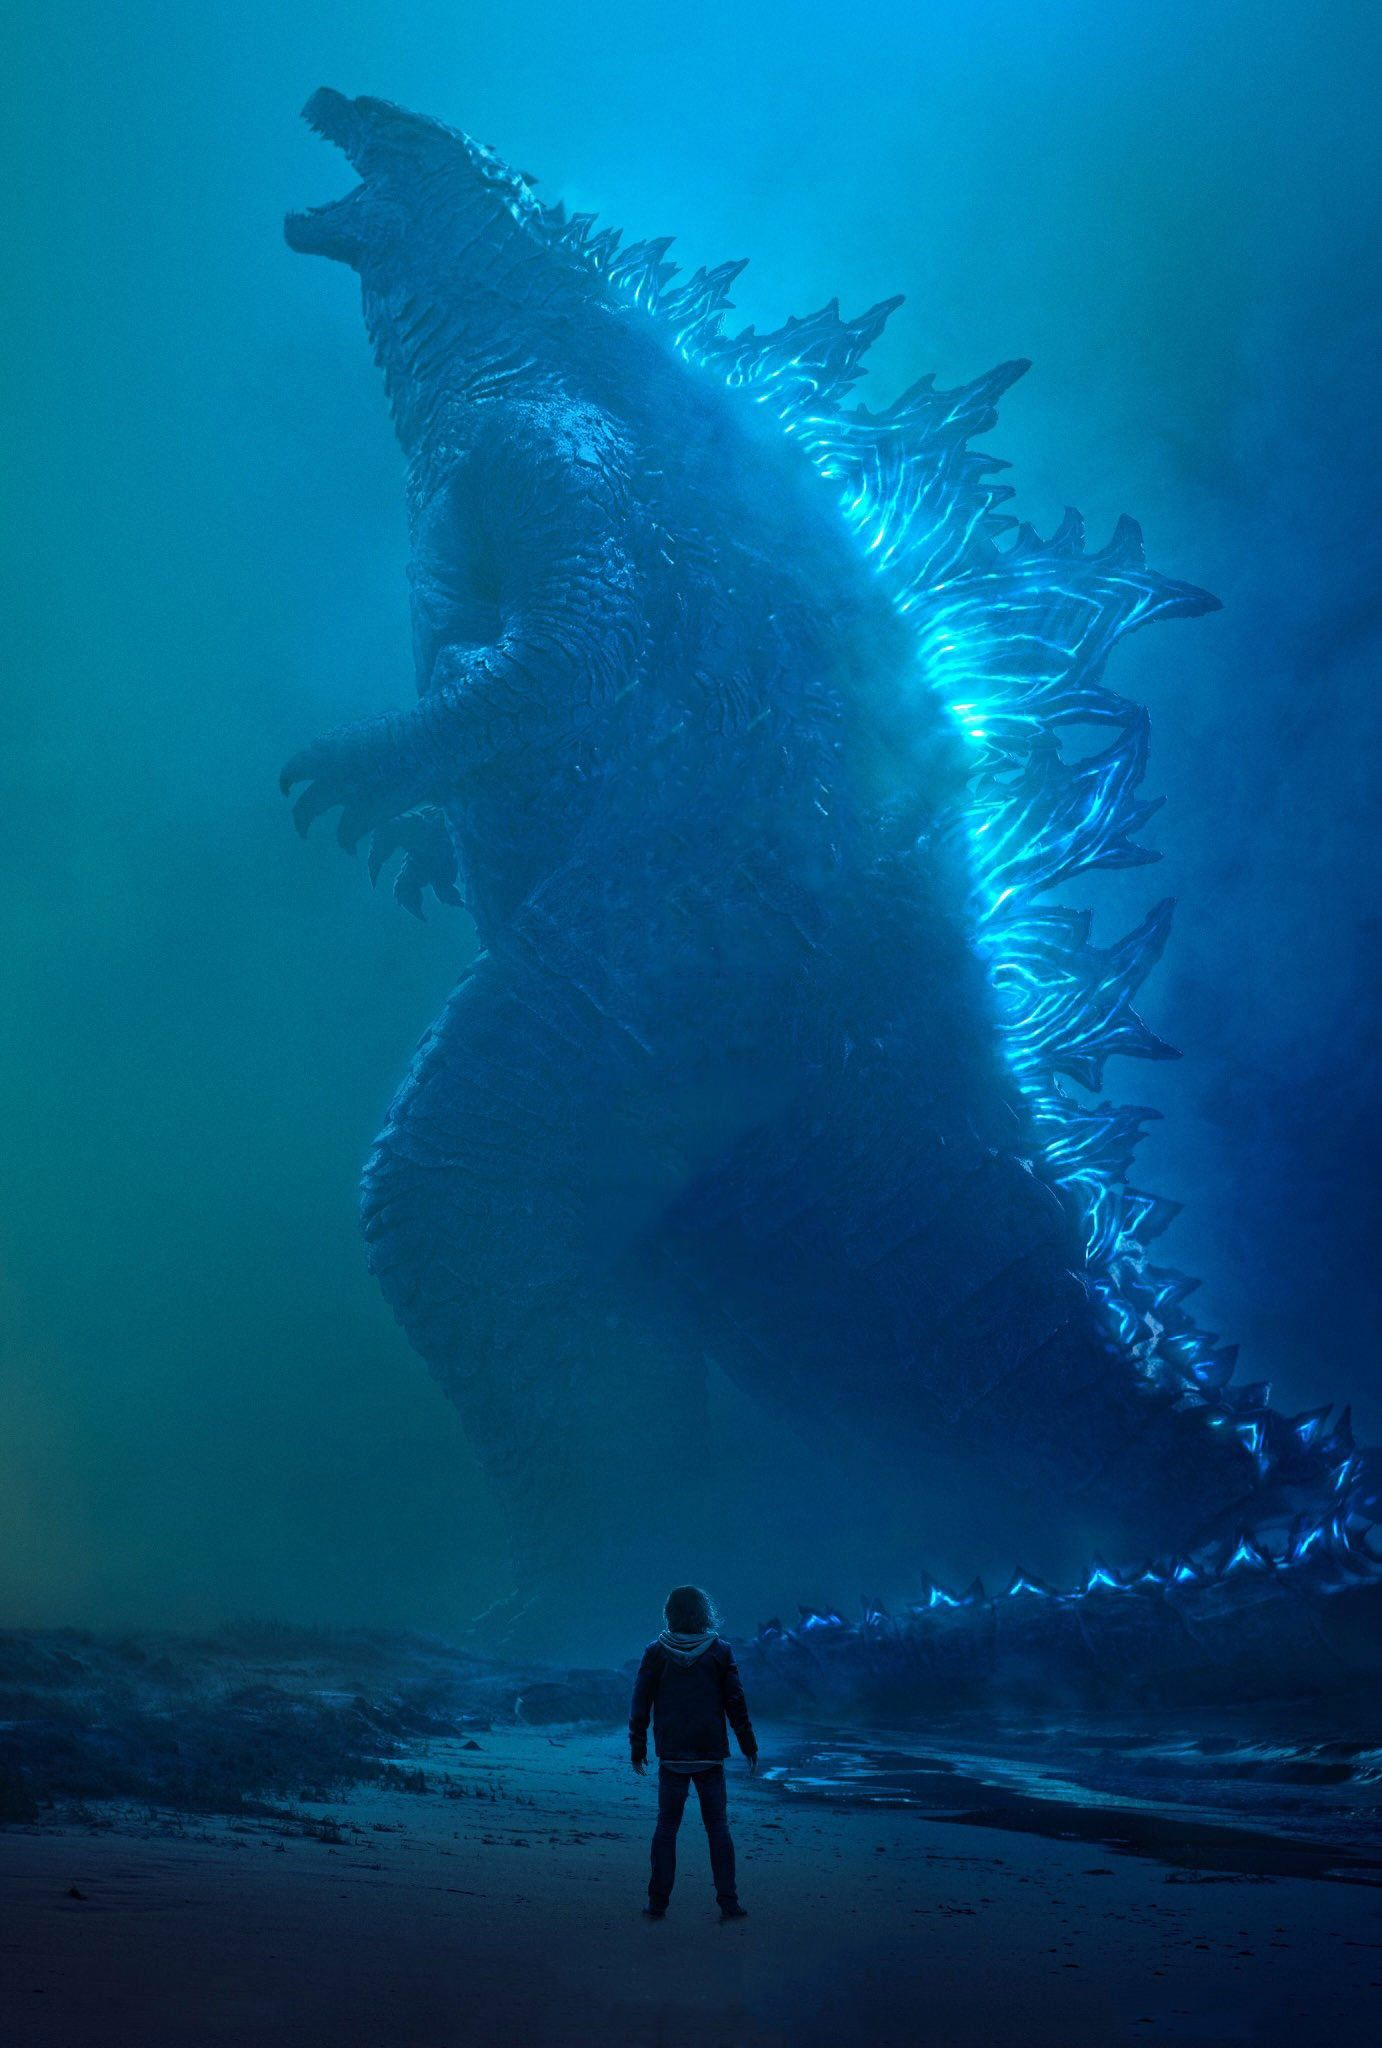 Official Godzilla King of the Monsters Poster Textless